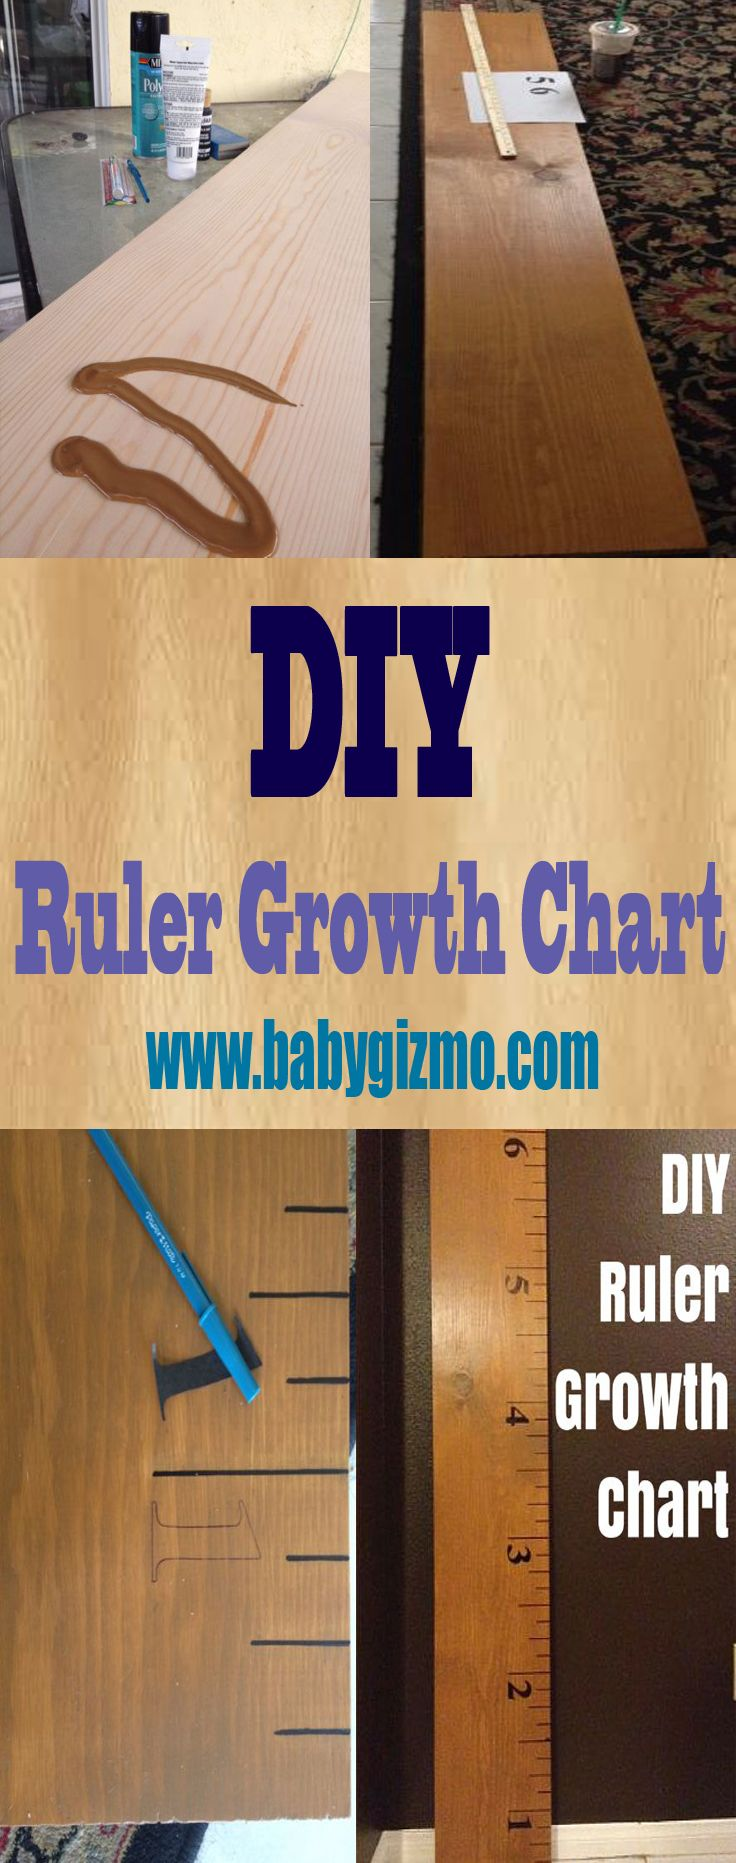 Step-by-Step directions to make a DIY Ruler Growth Chart! #DIY #KidsRoom #BabyGizmo